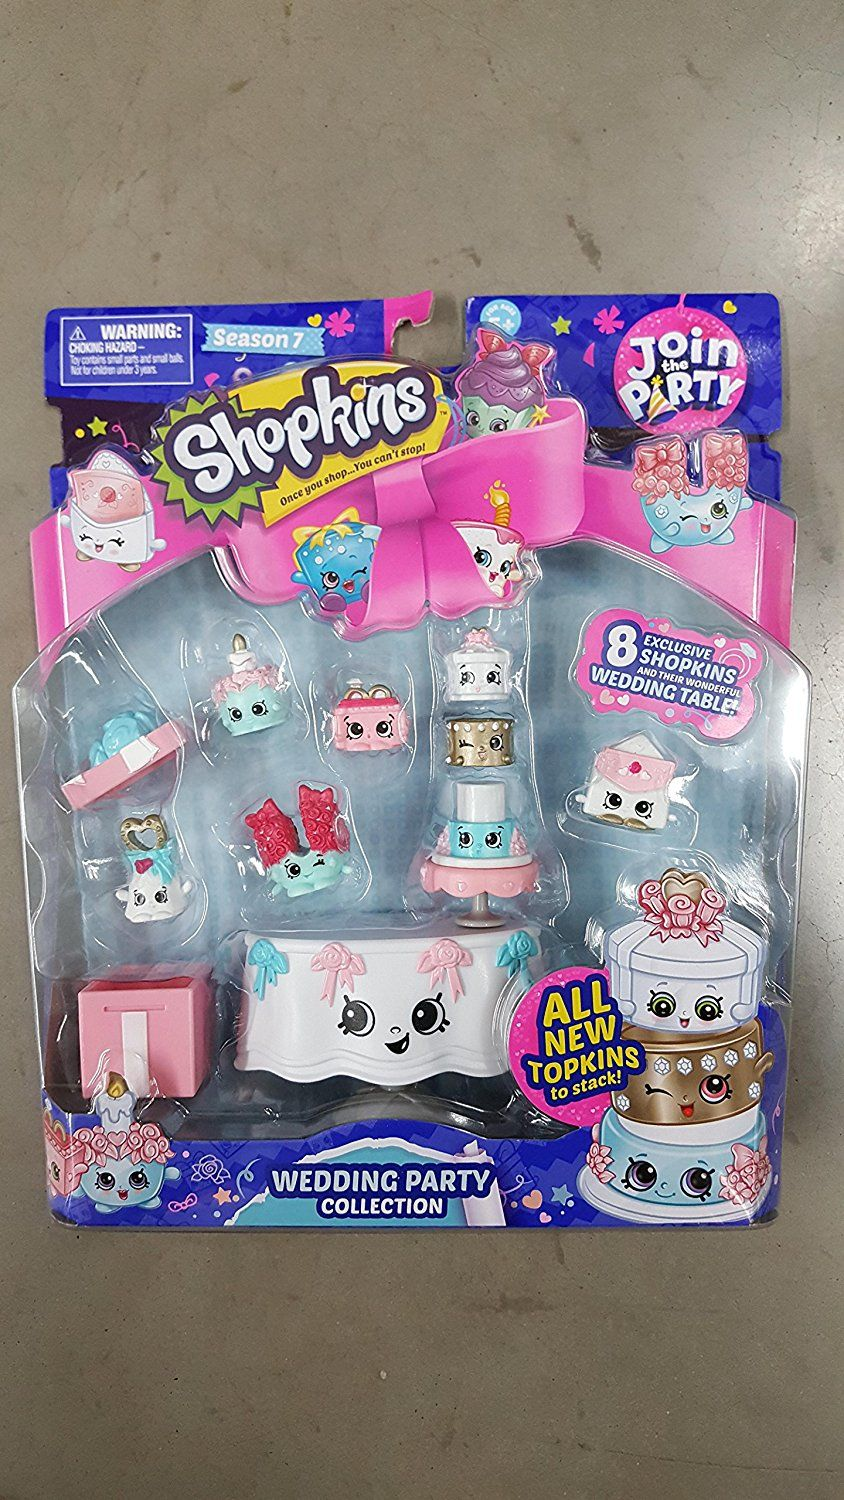 Amazon Com Shopkins Join The Party Theme Pack Wedding Party Collection Toys Games Shopkins Join The Party Shopkin Dolls Mermaid Toys